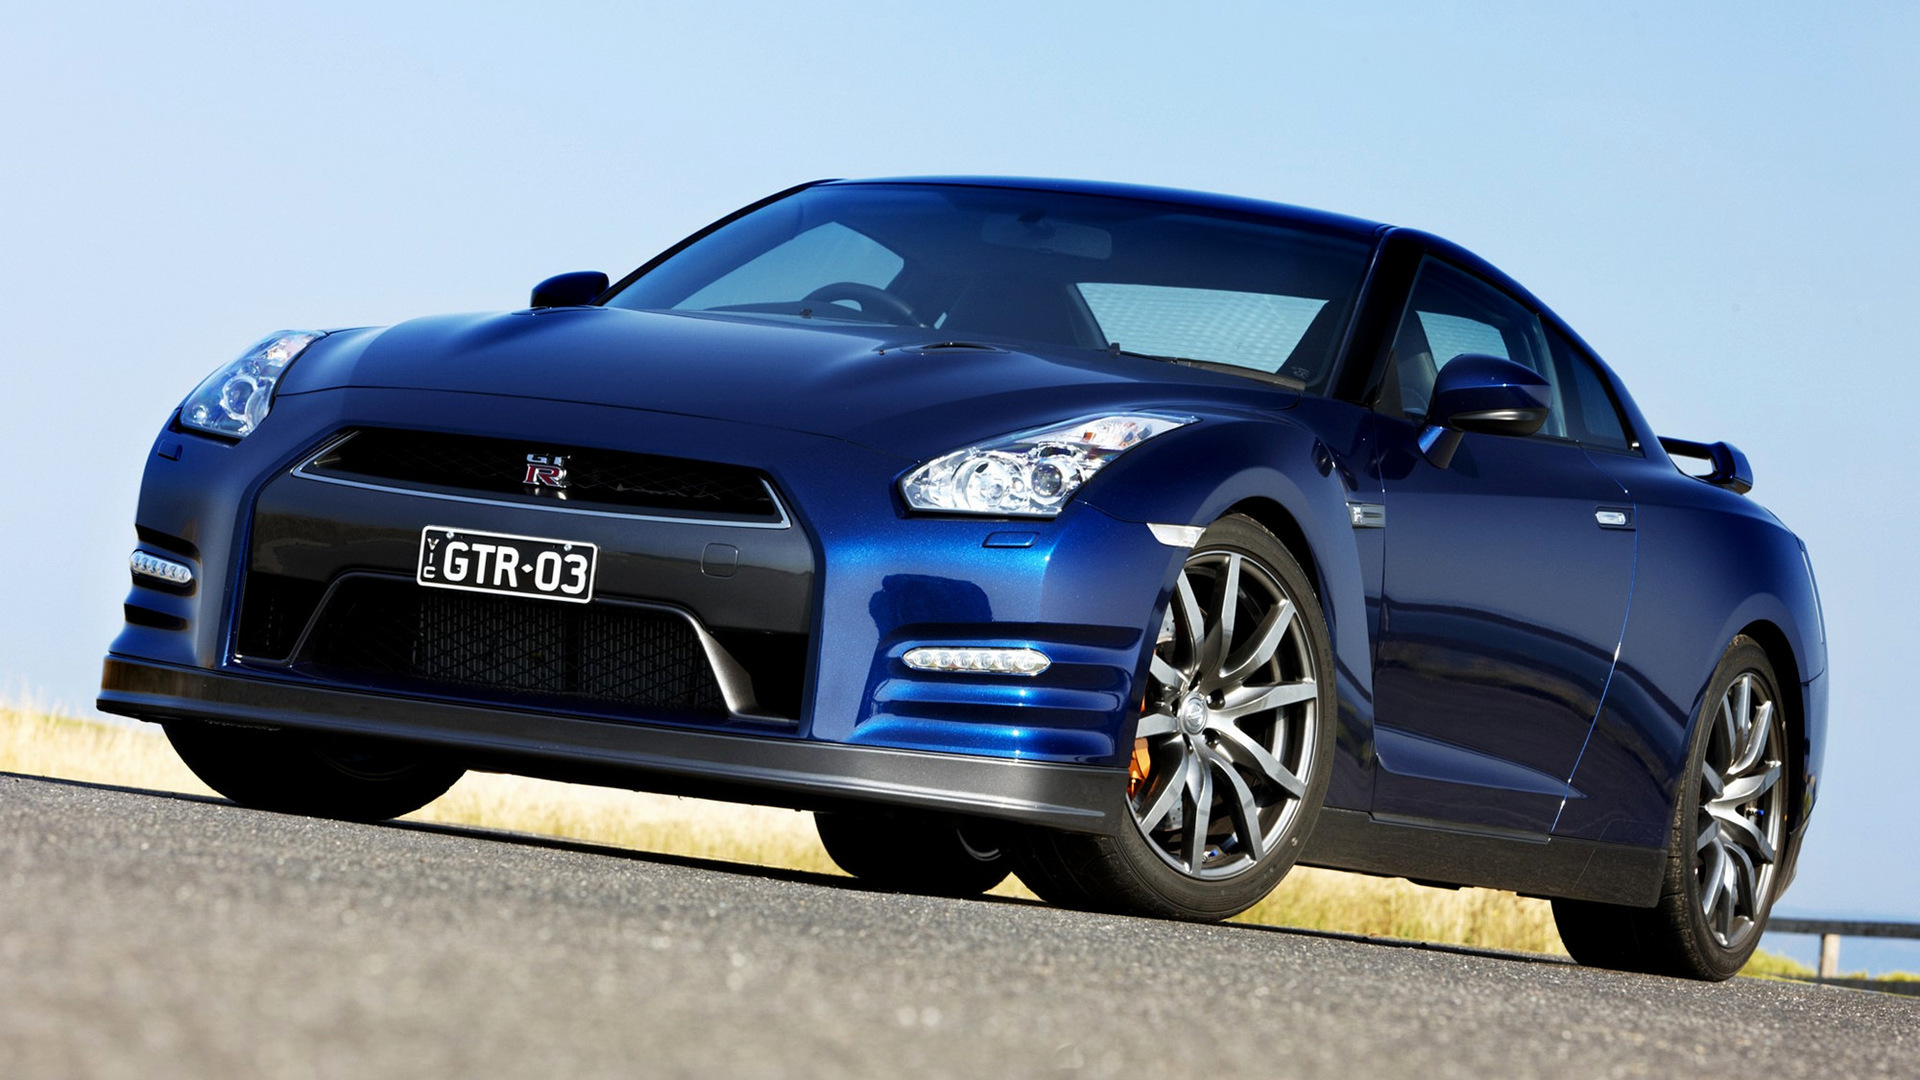 Nissan GT R Wallpapers Images Photos Pictures Backgrounds 1920x1080